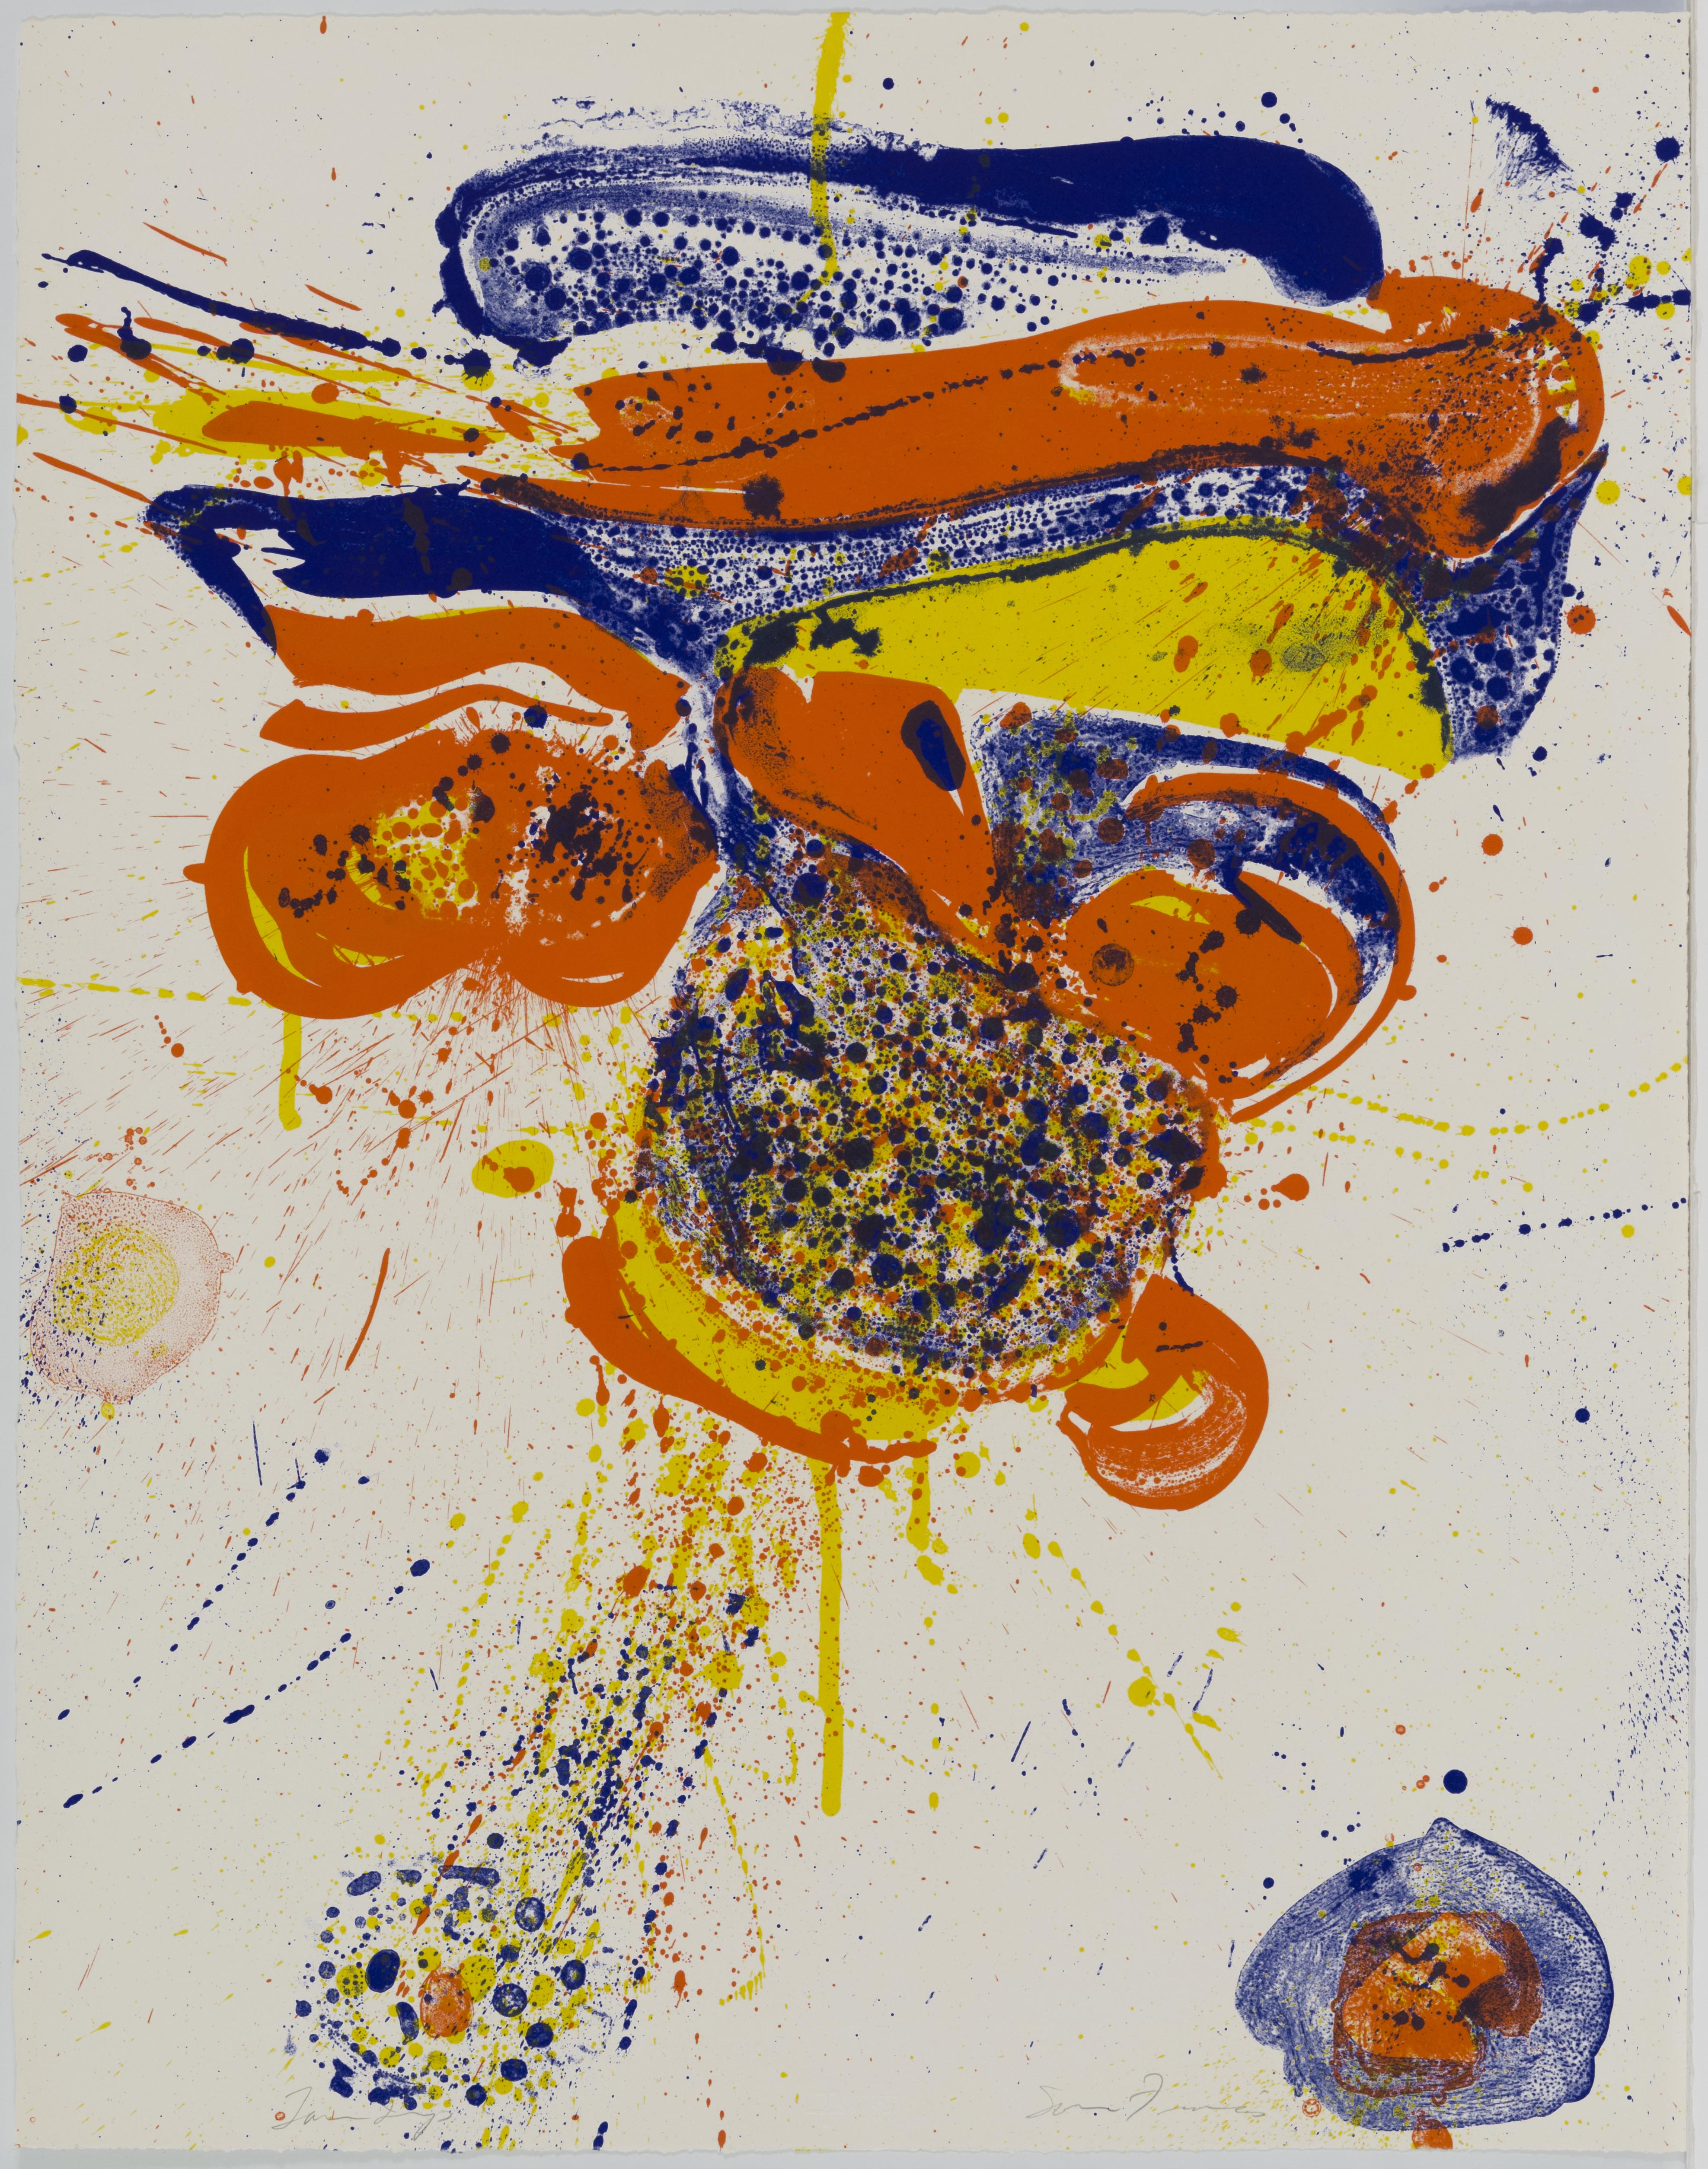 Sam Francis, Flying Love, April 19-25, 1963